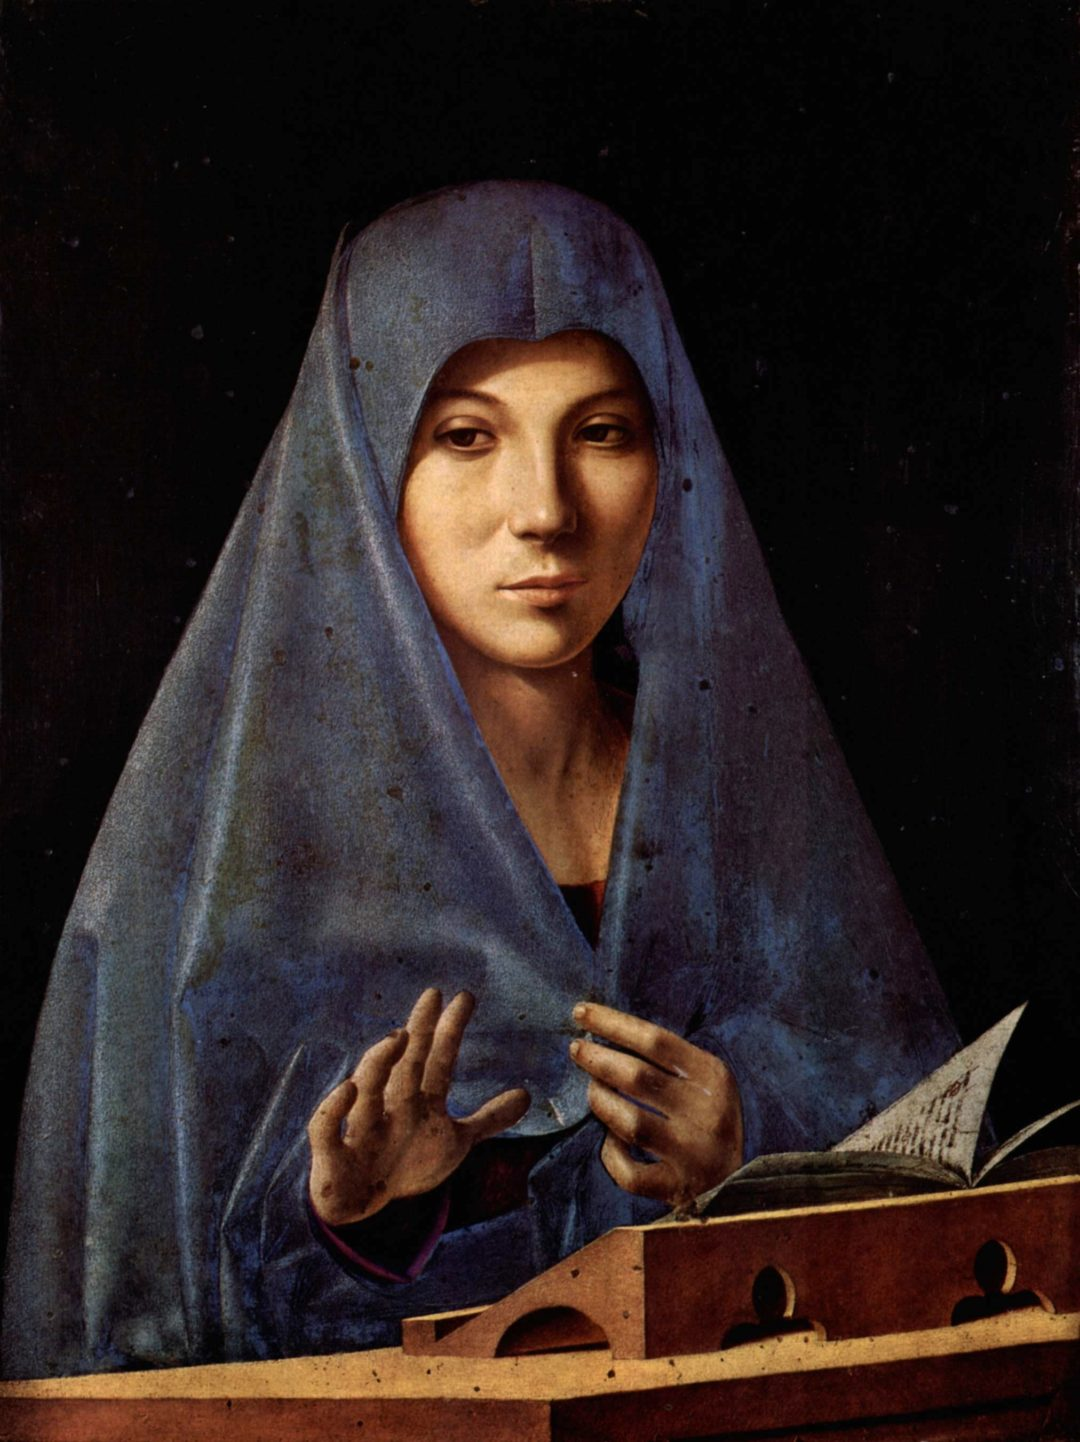 Lisa Sanditz on Antonello da Messina